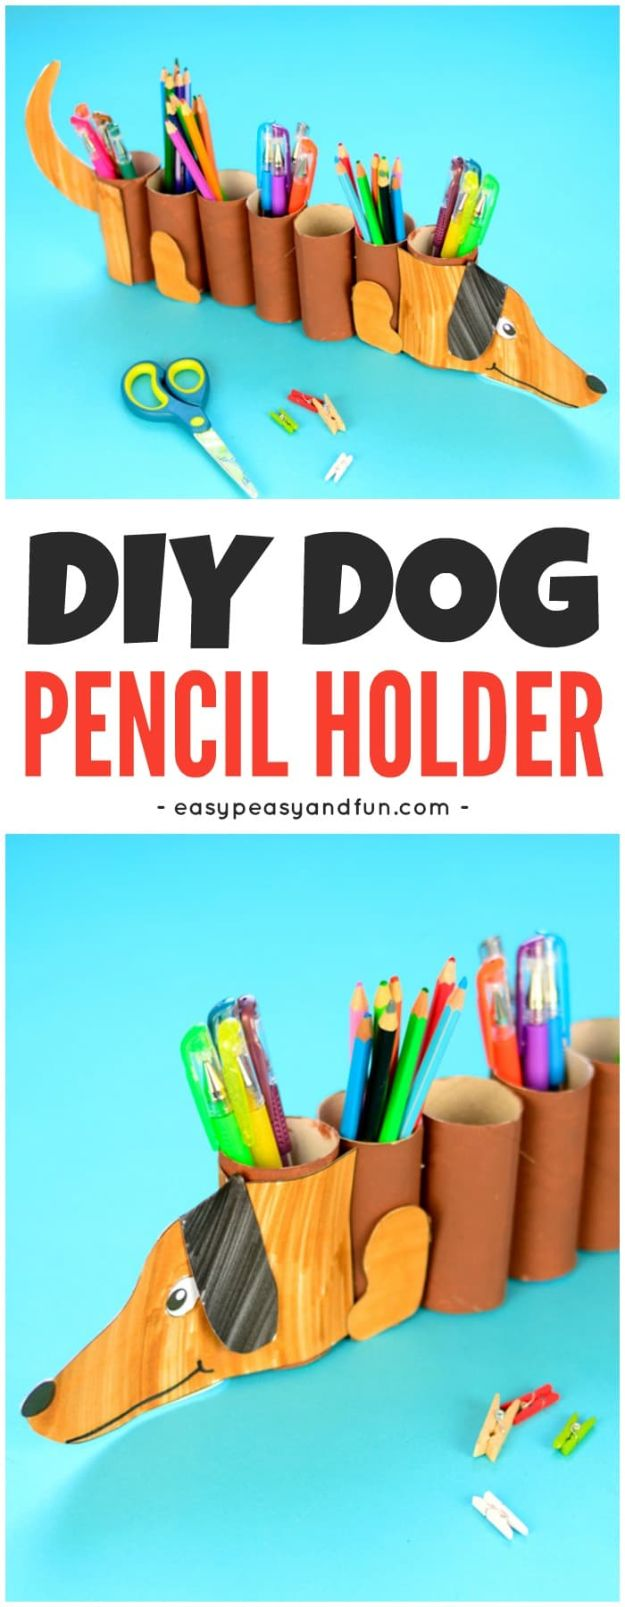 DIY Ideas With Dogs - Dog Paper Roll Pencil Holder - Cute and Easy DIY Projects for Dog Lovers - Wall and Home Decor Projects, Things To Make and Sell on Etsy - Quick Gifts to Make for Friends Who Have Puppies and Doggies - Homemade No Sew Projects- Fun Jewelry, Cool Clothes and Accessories #dogs #crafts #diyideas